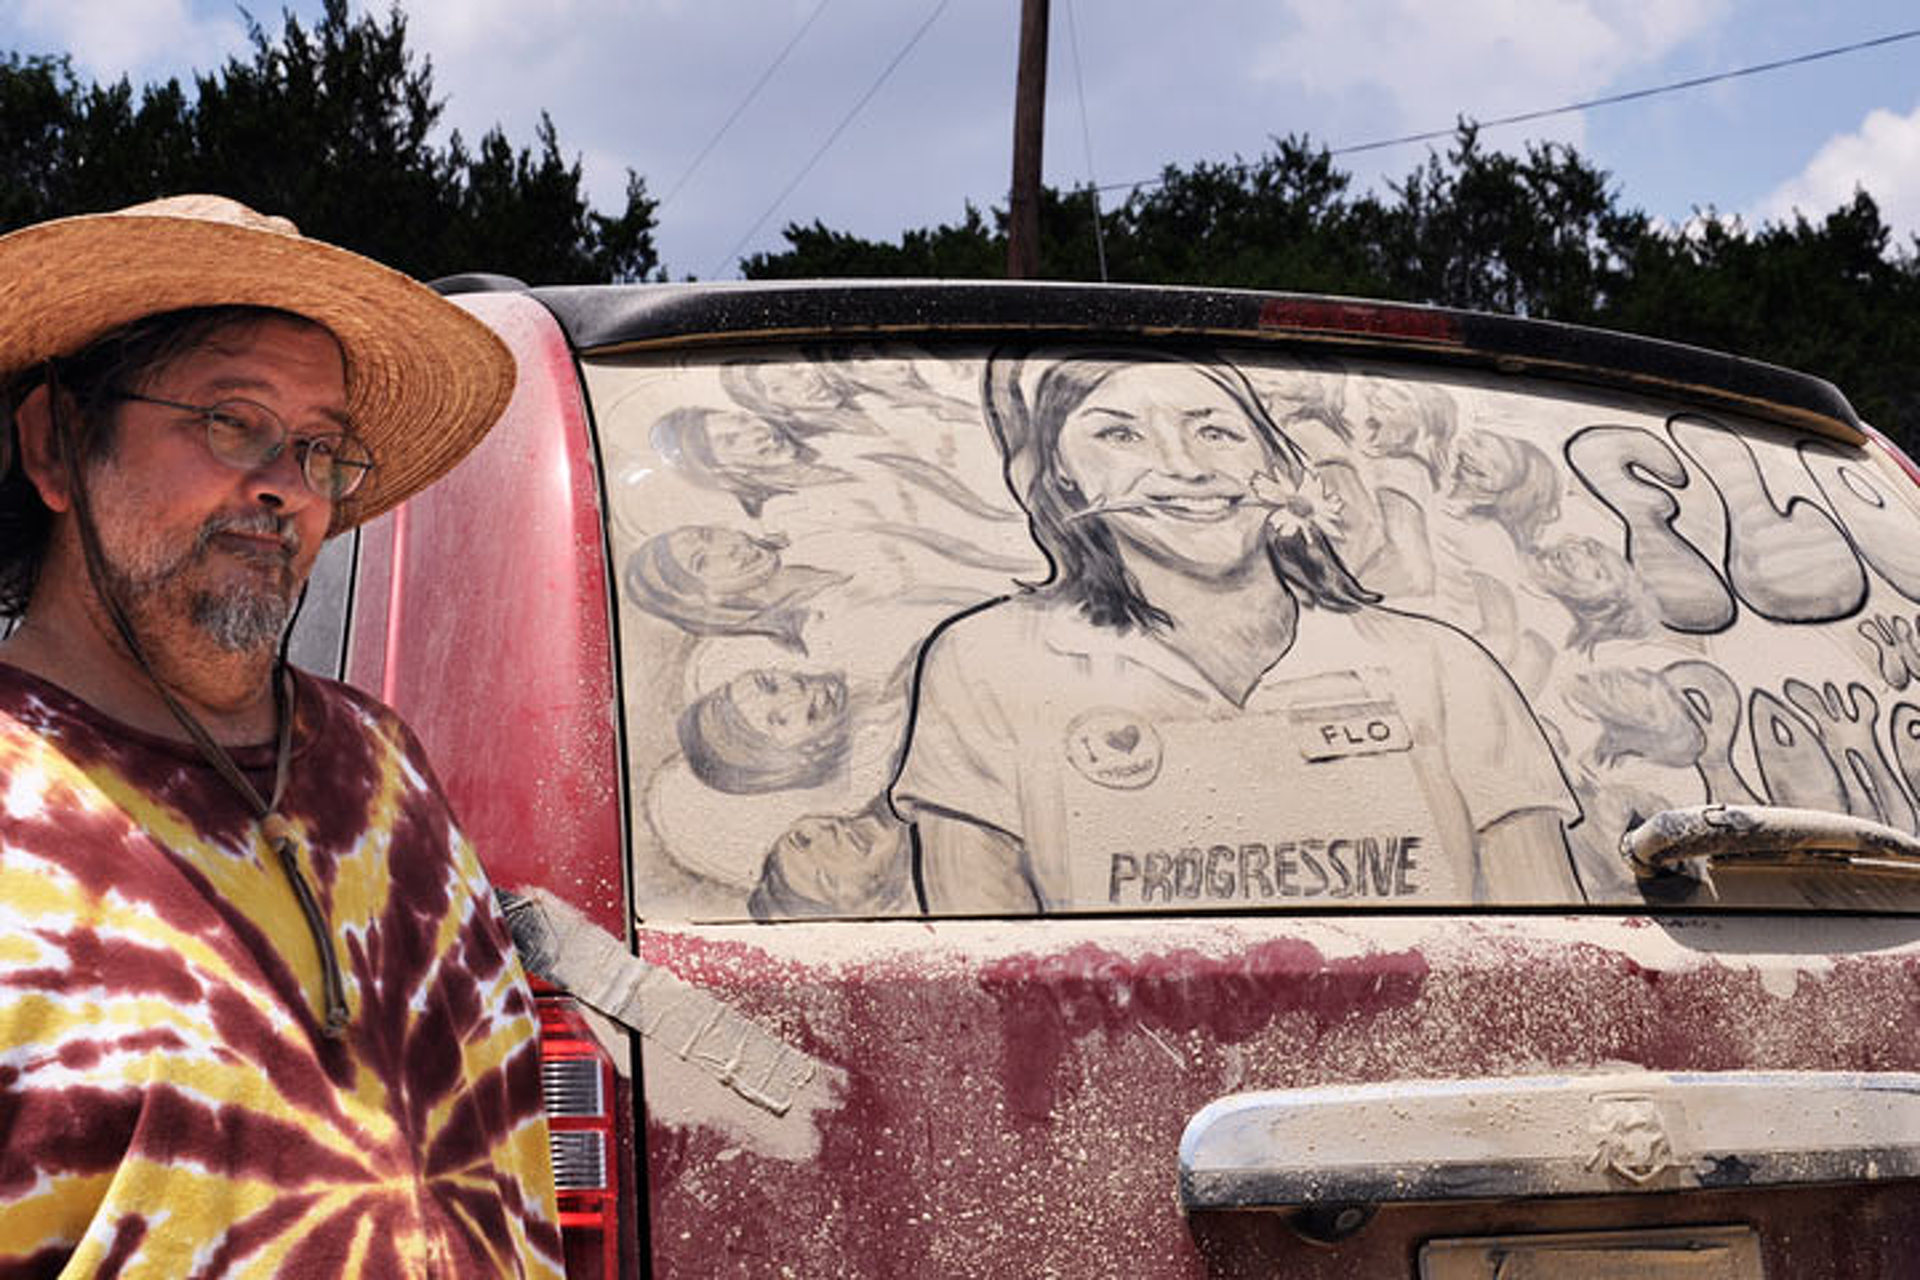 Texas Man Turns Dirty Car Windows into Art